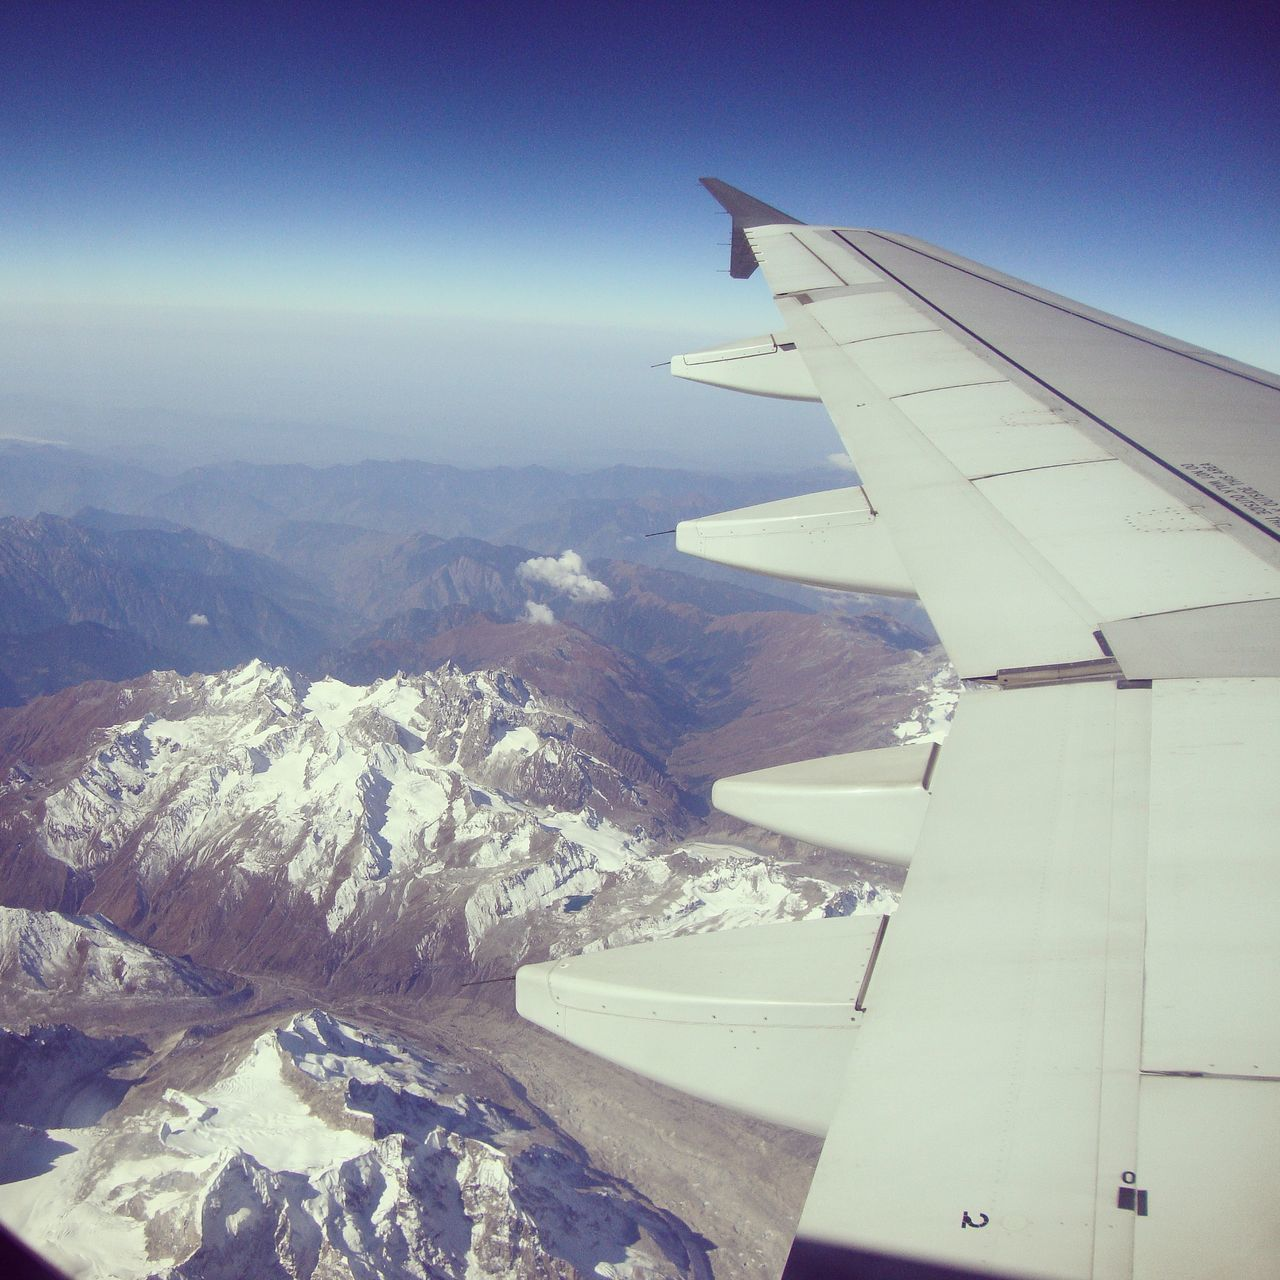 aerial view, nature, airplane, landscape, journey, airplane wing, beauty in nature, travel, no people, transportation, scenics, aircraft wing, outdoors, mountain, sky, day